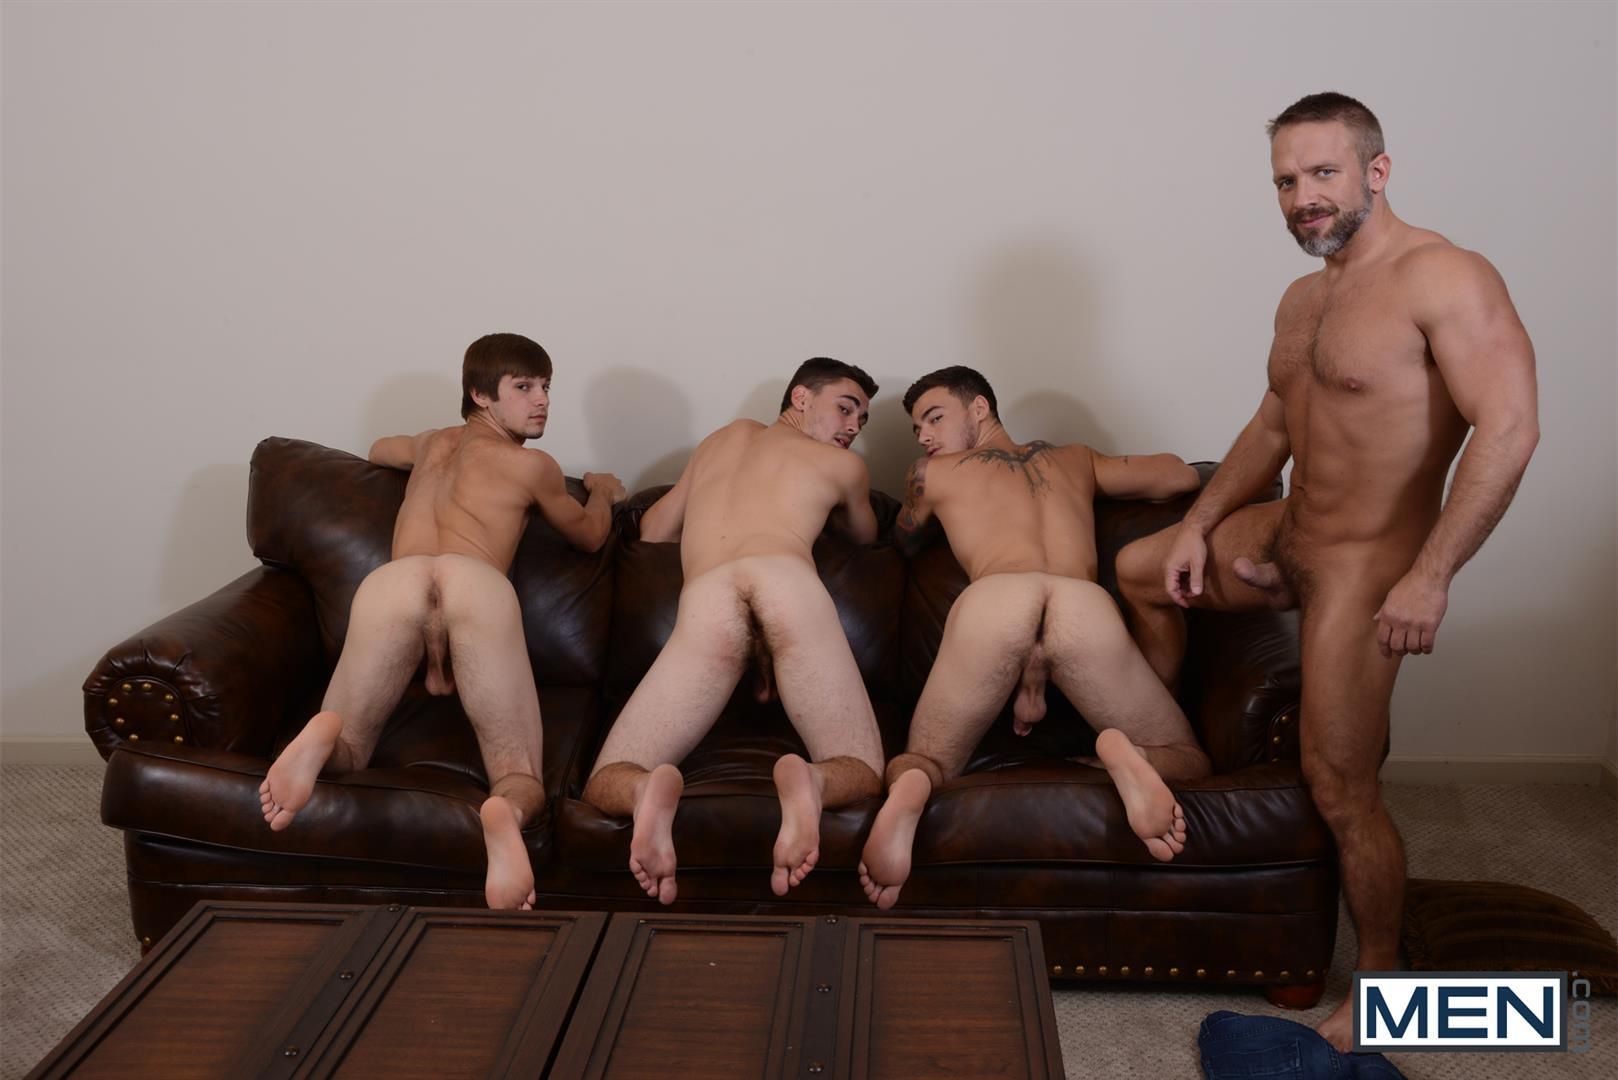 gay intergenerational sex Gay Butt Sex Captivating For Stimulatinghairy Men Orgy Mature Gay Dads Fuck  With Married Bi Daddys